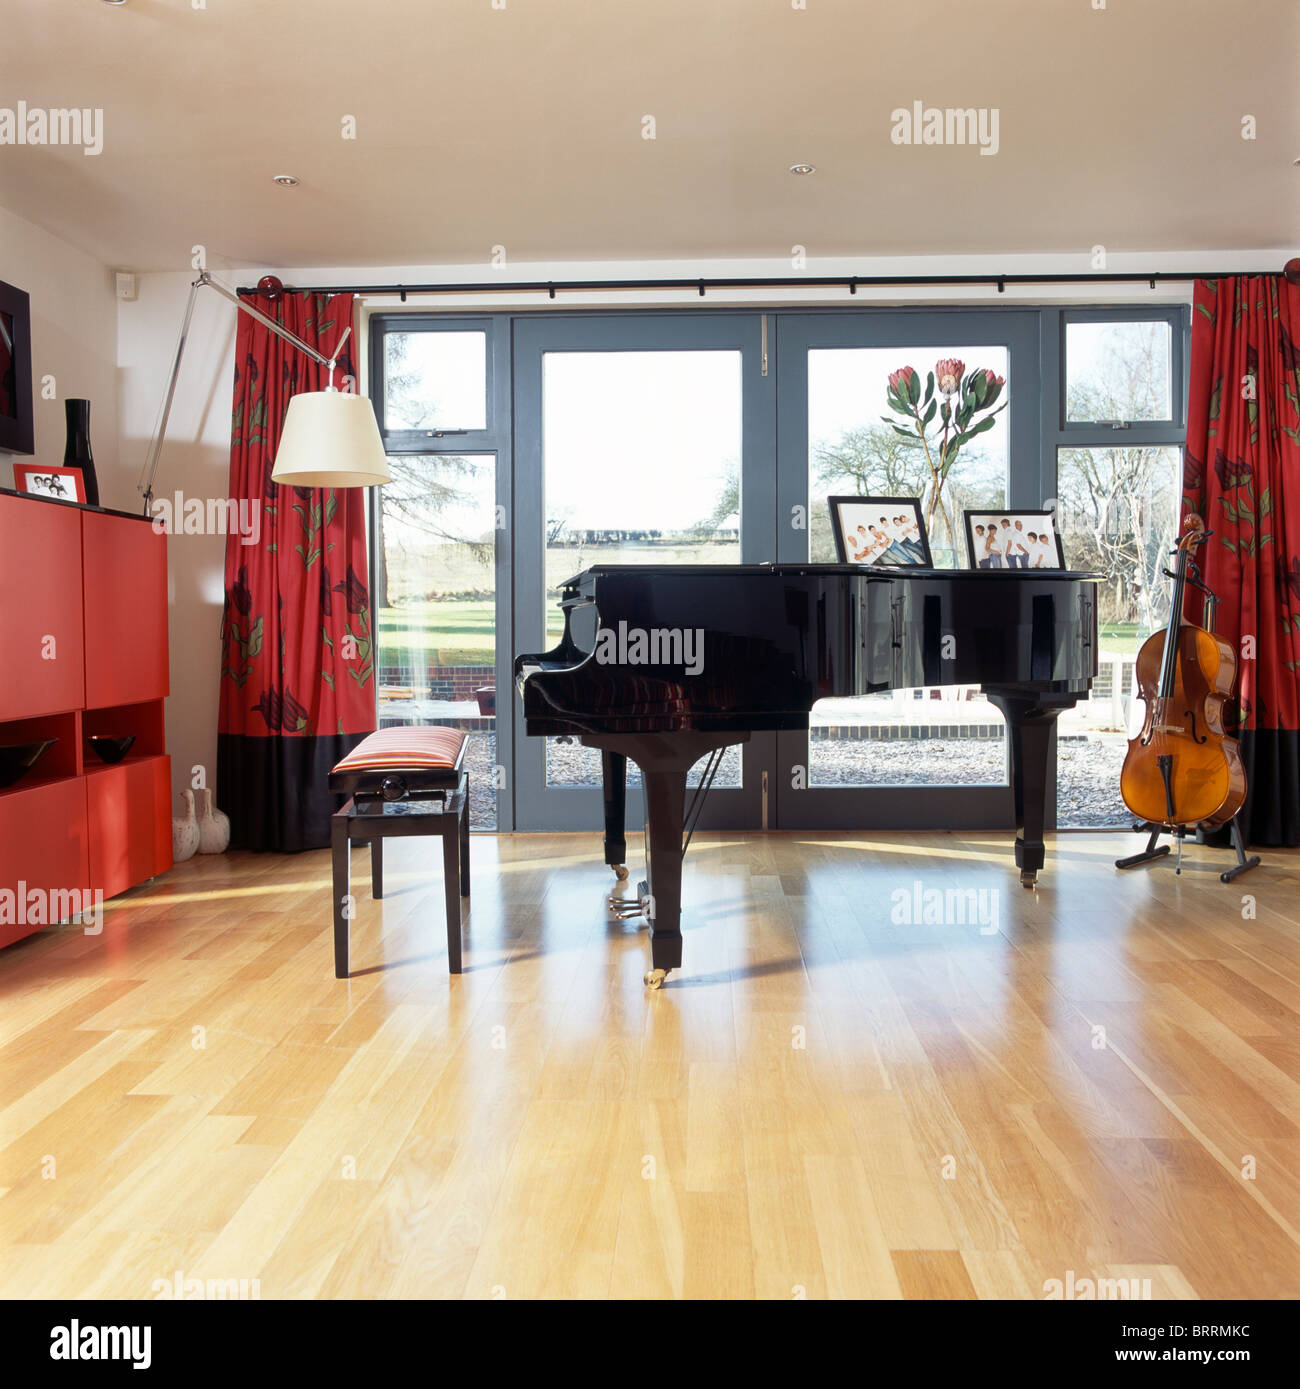 Empty room with chair violin and sheet music on floor photograph - Grand Piano In Front Of French Windows In Modern Music Room With Pale Wood Flooring